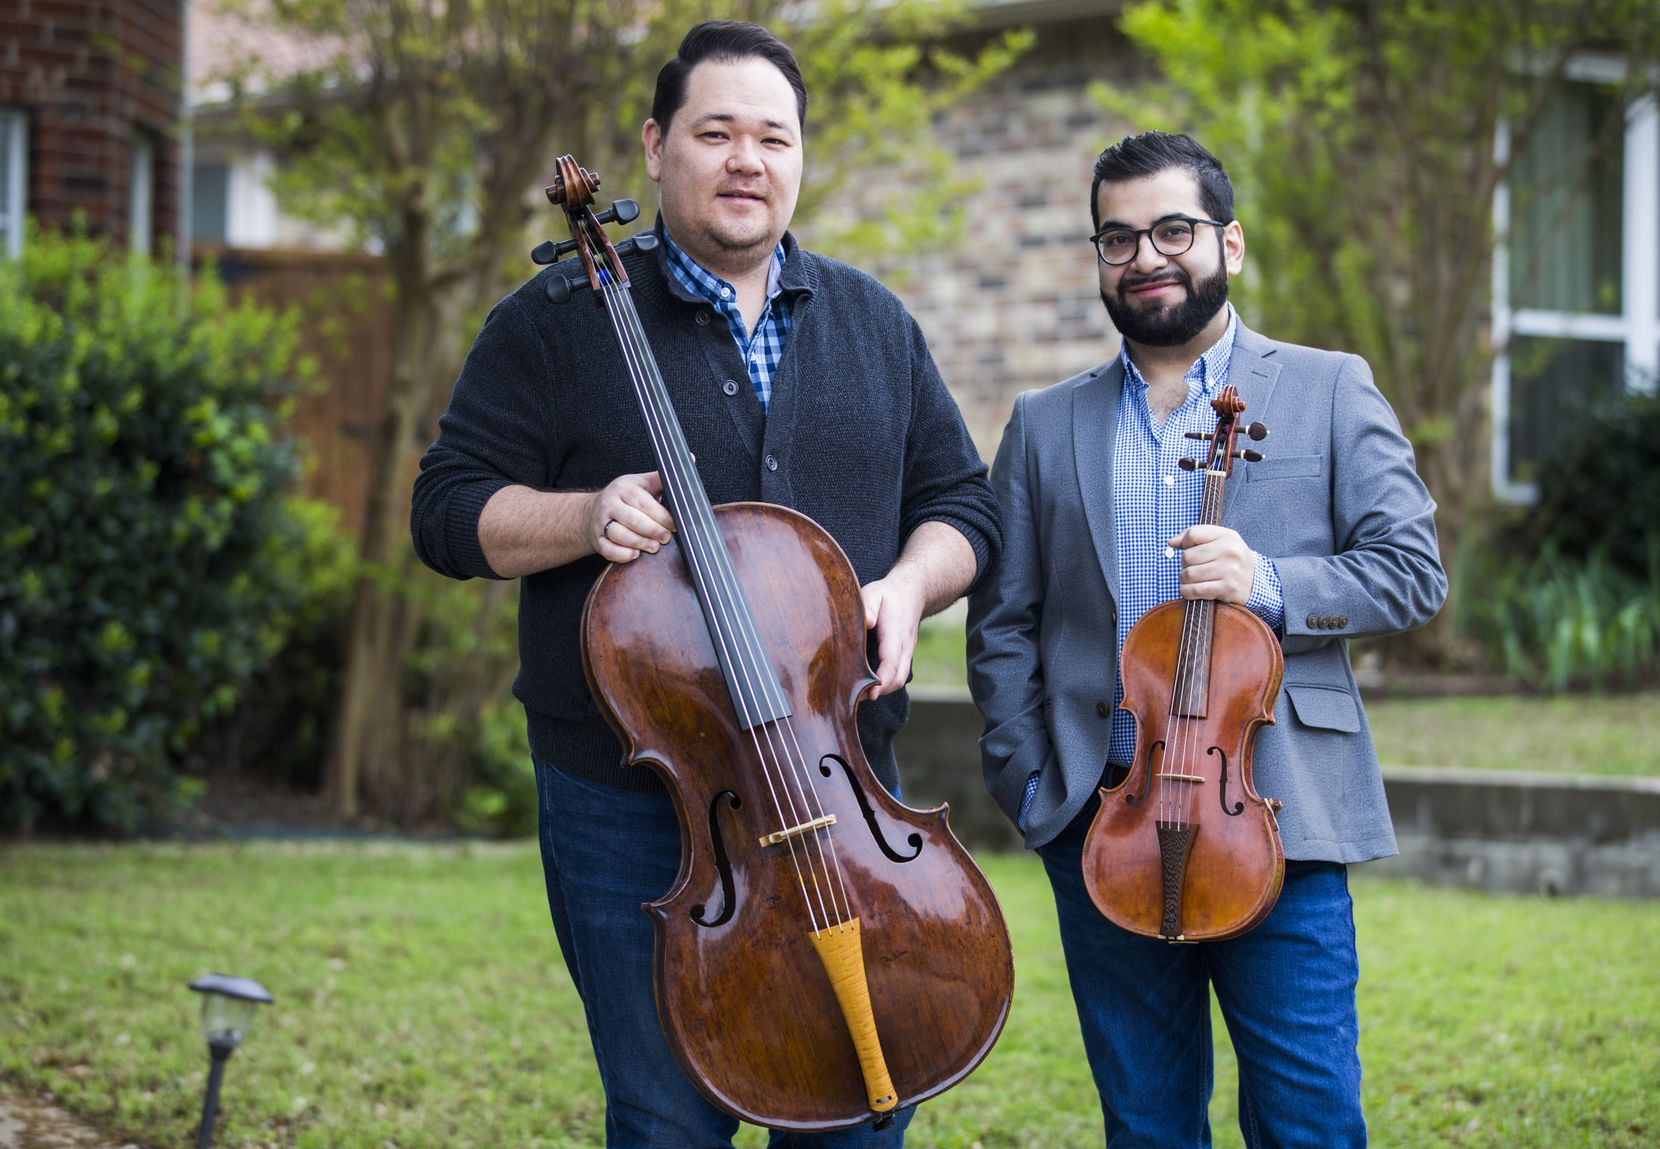 Freelance musician Eric Smith (left) and Miguel Cantú IV have lost most of their primary income because of the pandemic. The couple, who live in Plano, say they are uninsured. Cantú started work at Central Market this week.